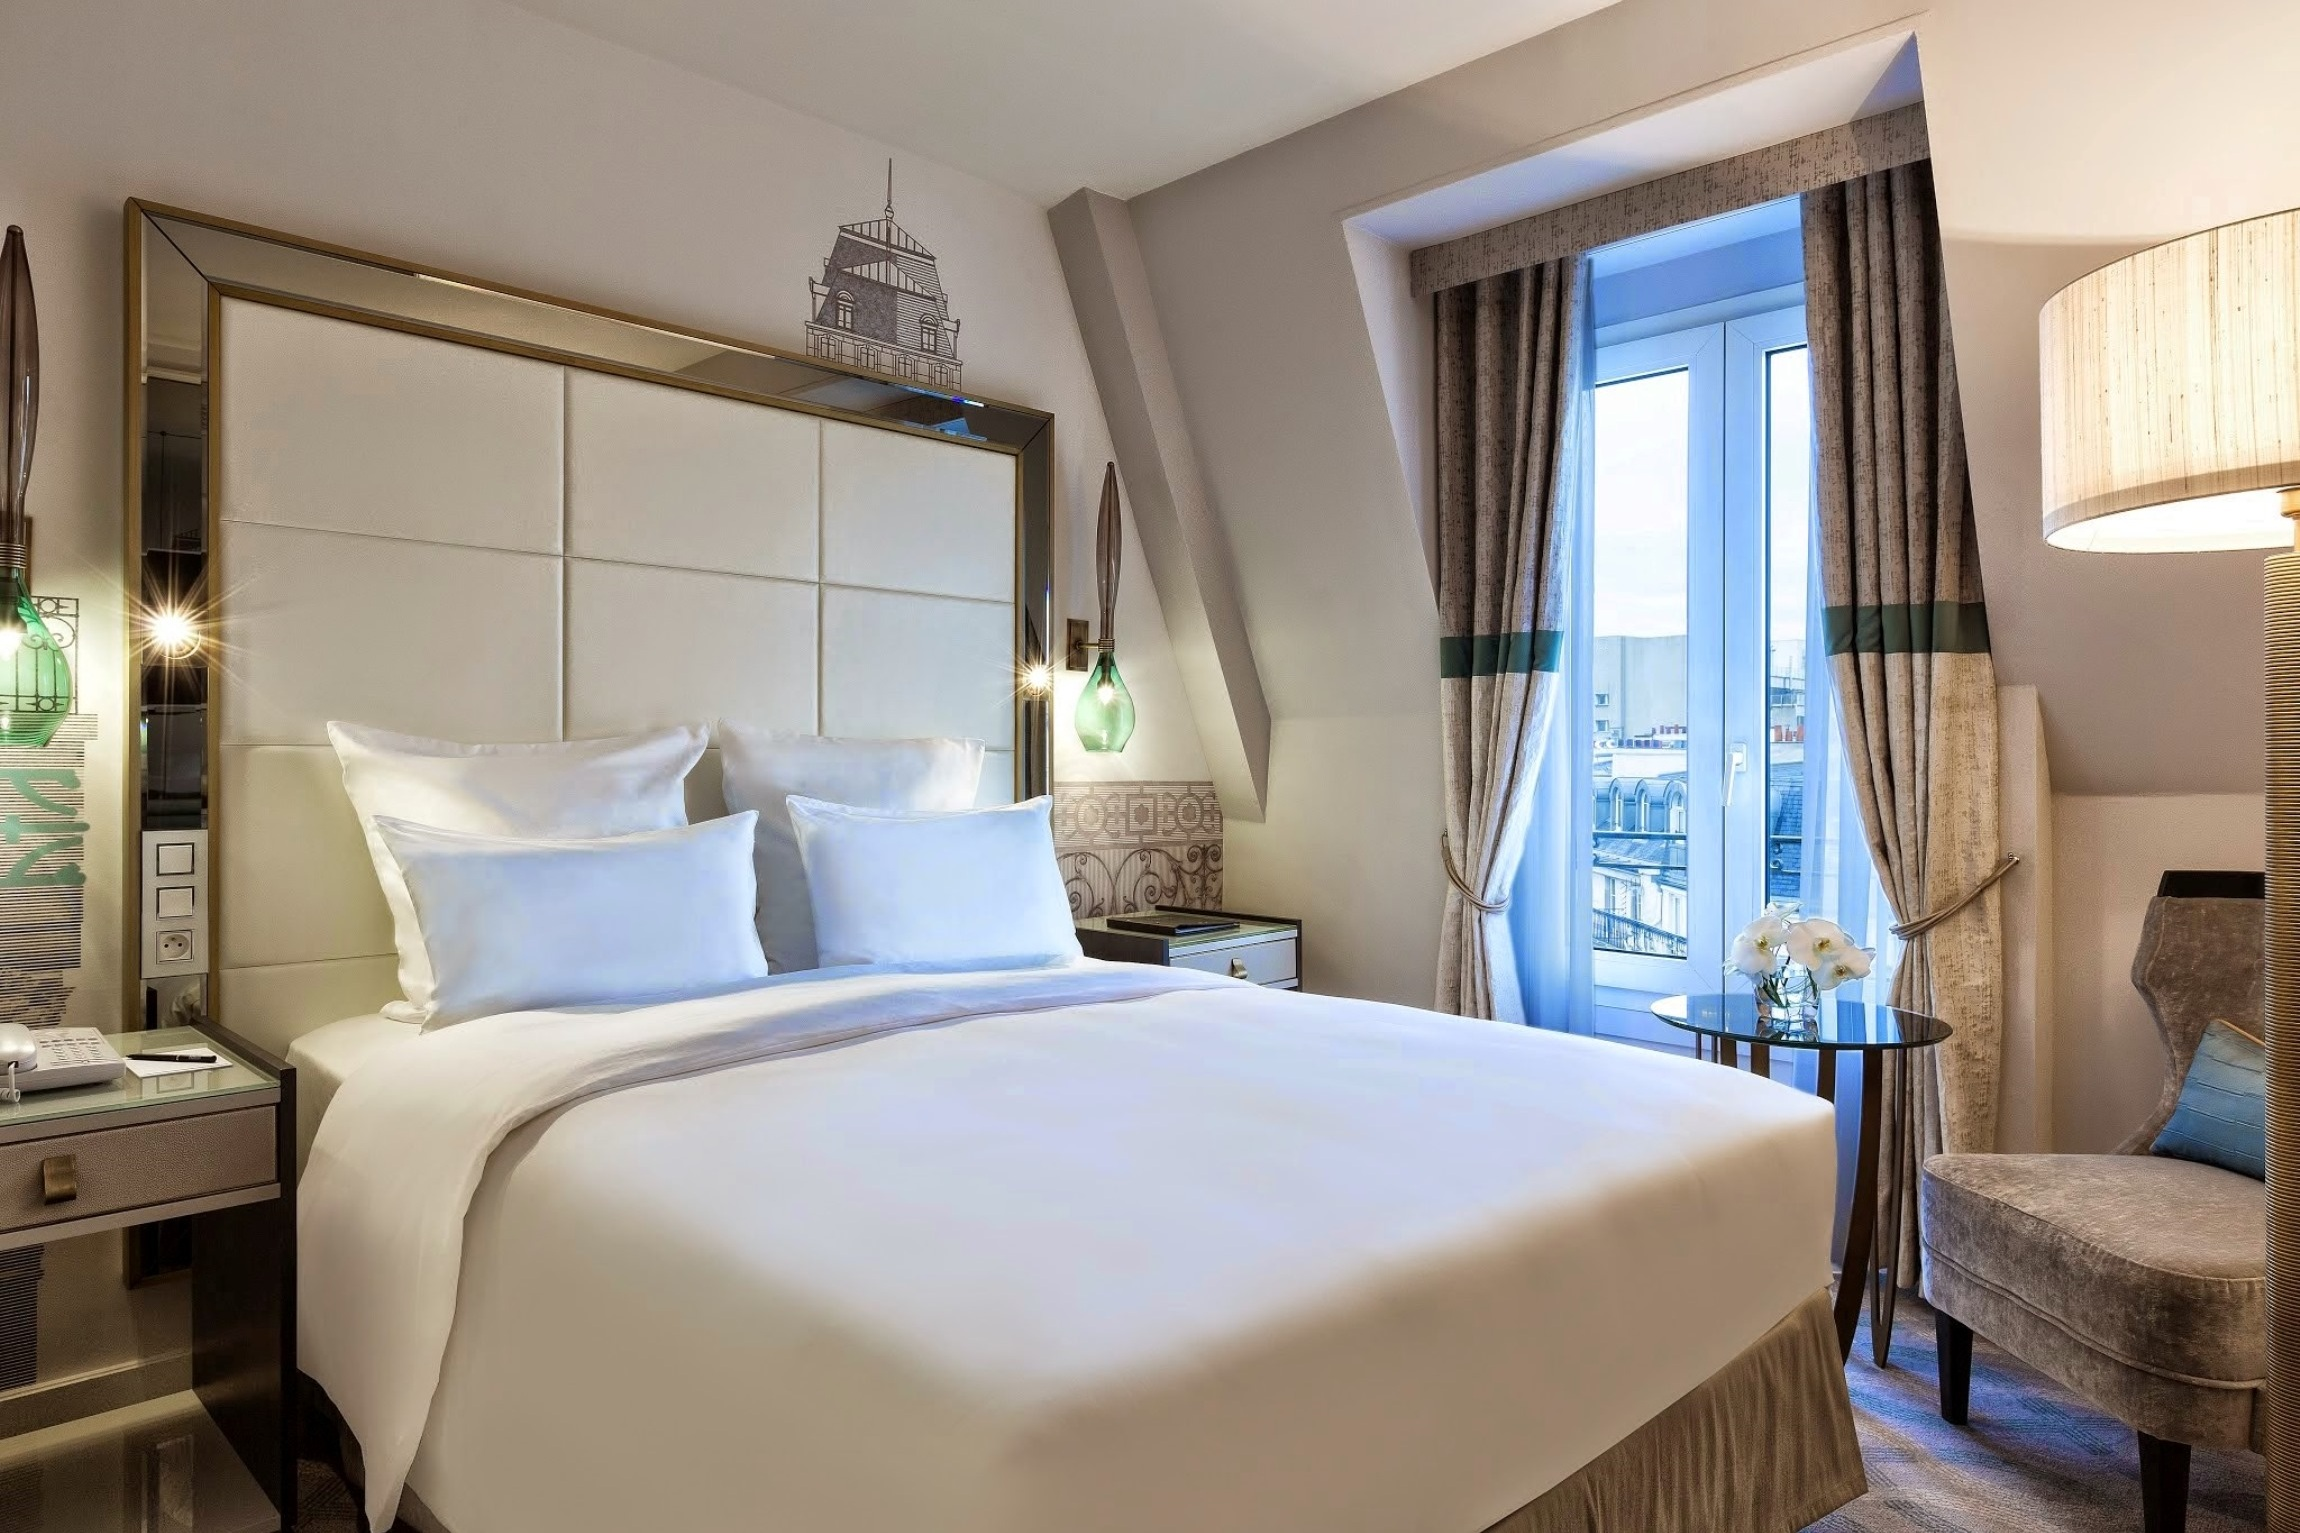 Redeem 72,000 Hilton Honors points for a night at the Hilton Paris Opéra